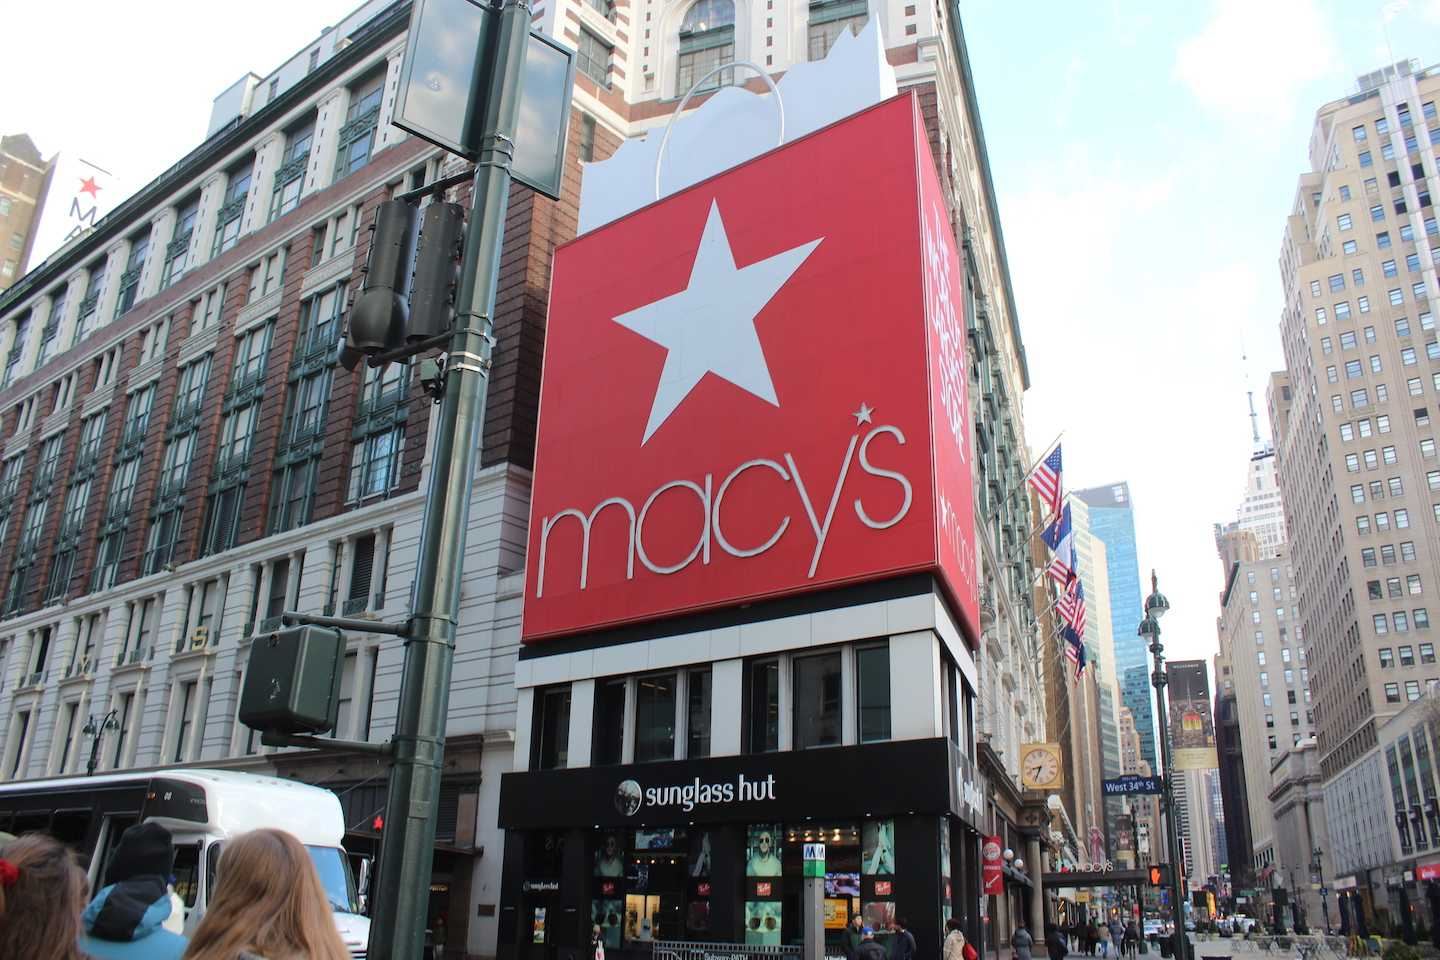 The+Macy%27s+Department+Store+in+Herald+Square%2C+NY.+